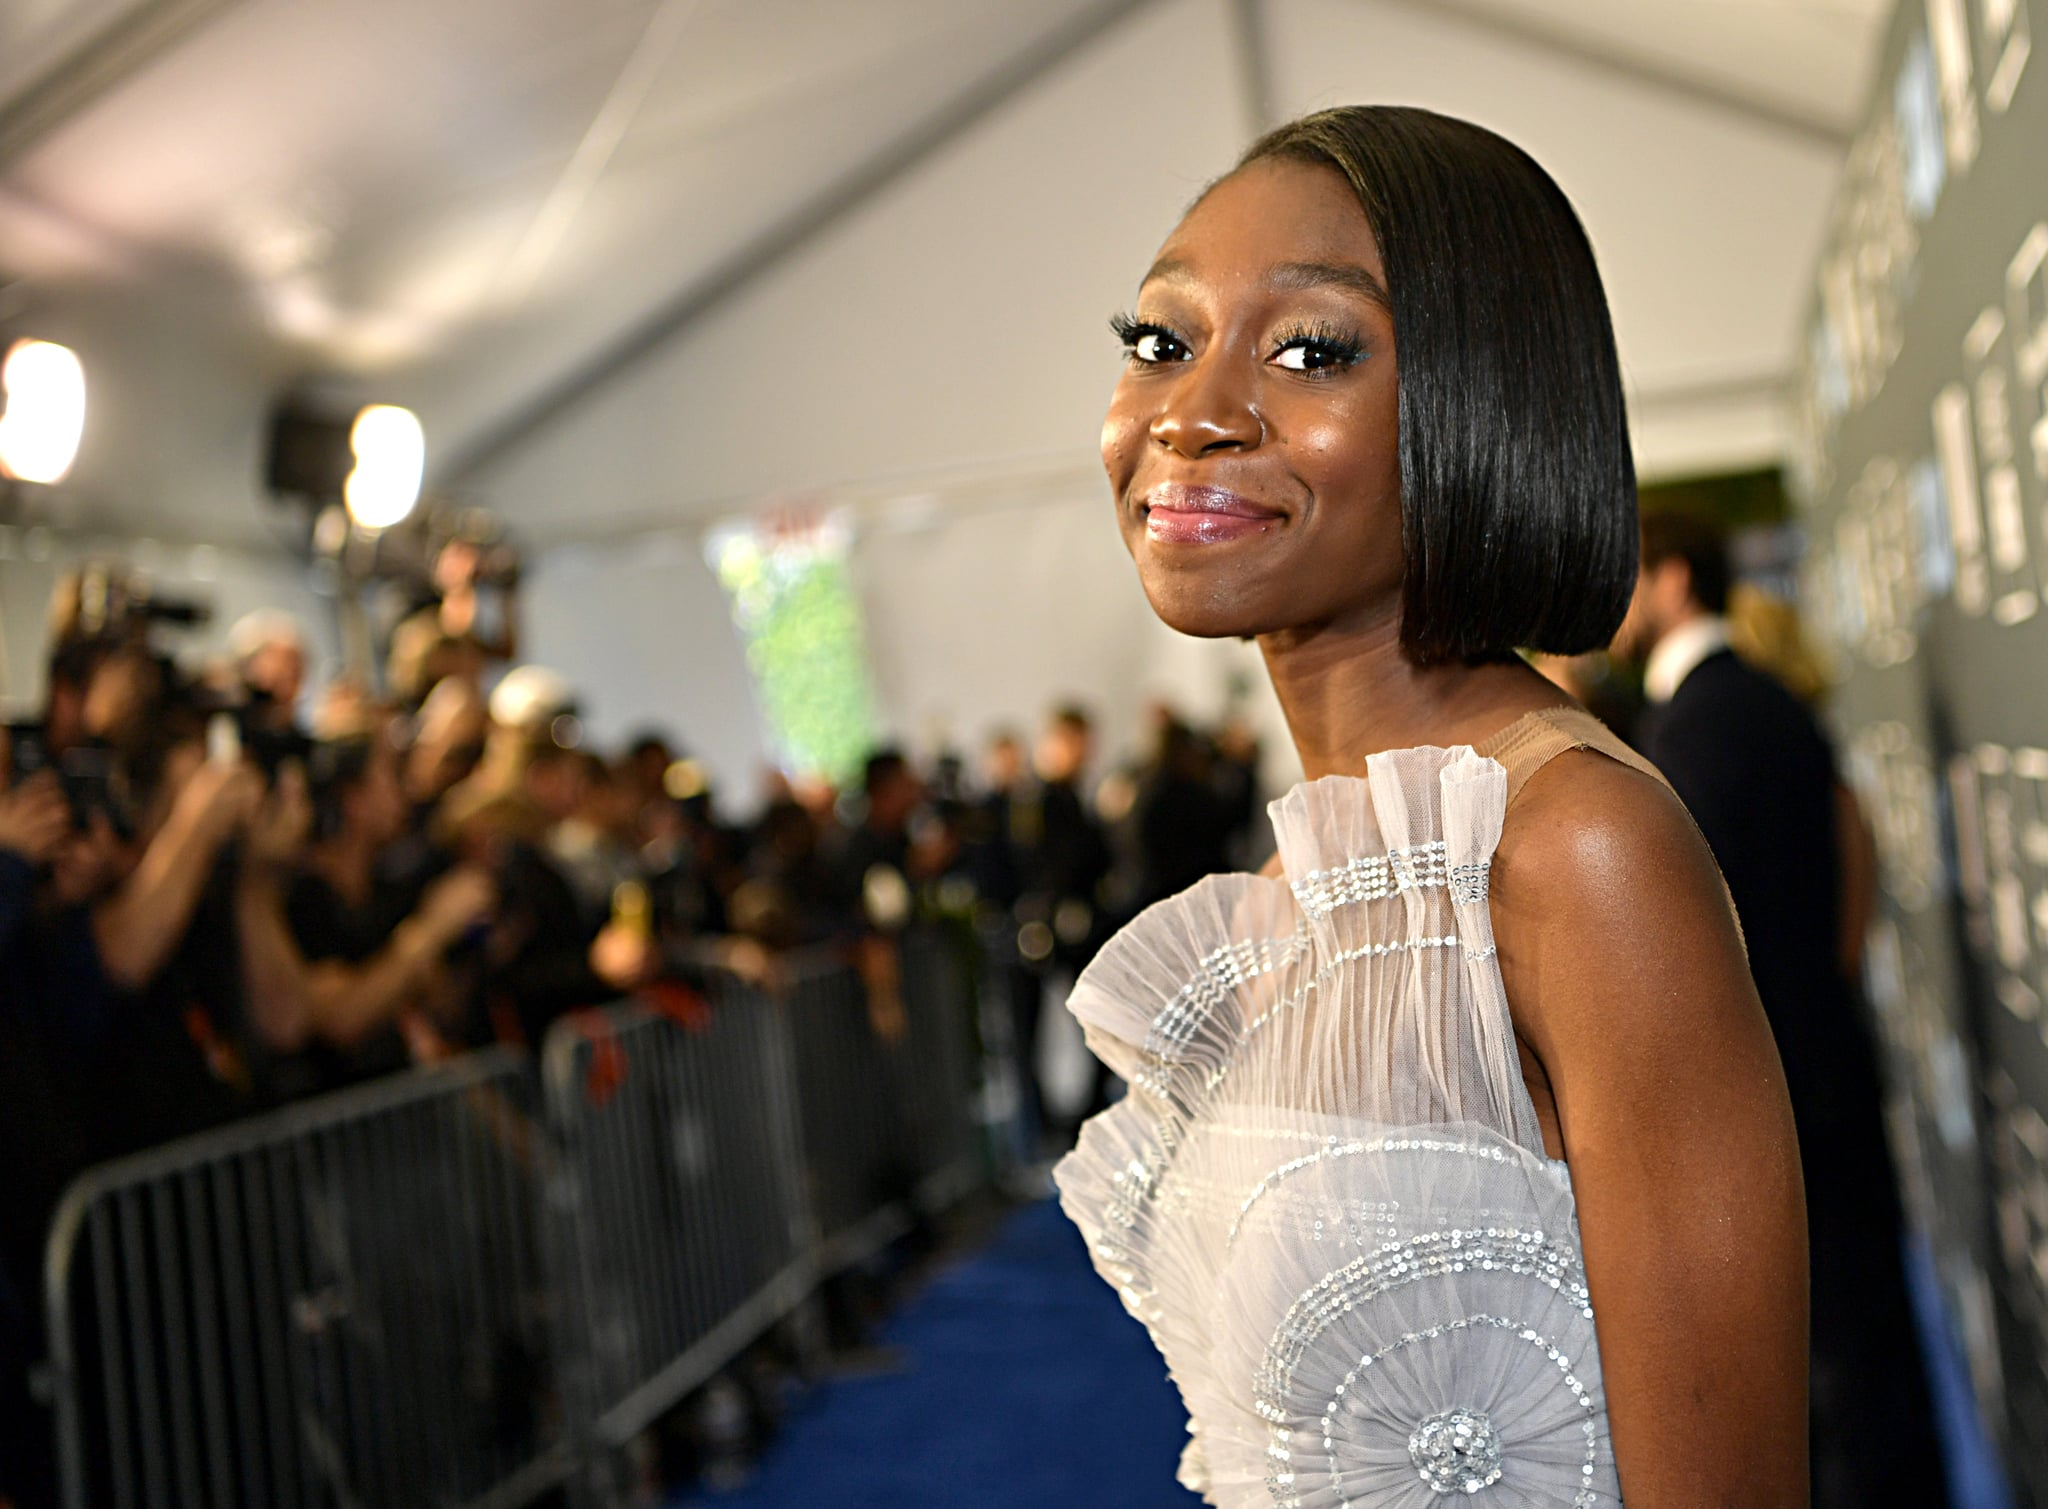 SANTA MONICA, CALIFORNIA - JANUARY 12: Shahadi Wright Joseph attends the 25th Annual Critics' Choice Awards at Barker Hangar on January 12, 2020 in Santa Monica, California. (Photo by Emma McIntyre/Getty Images)